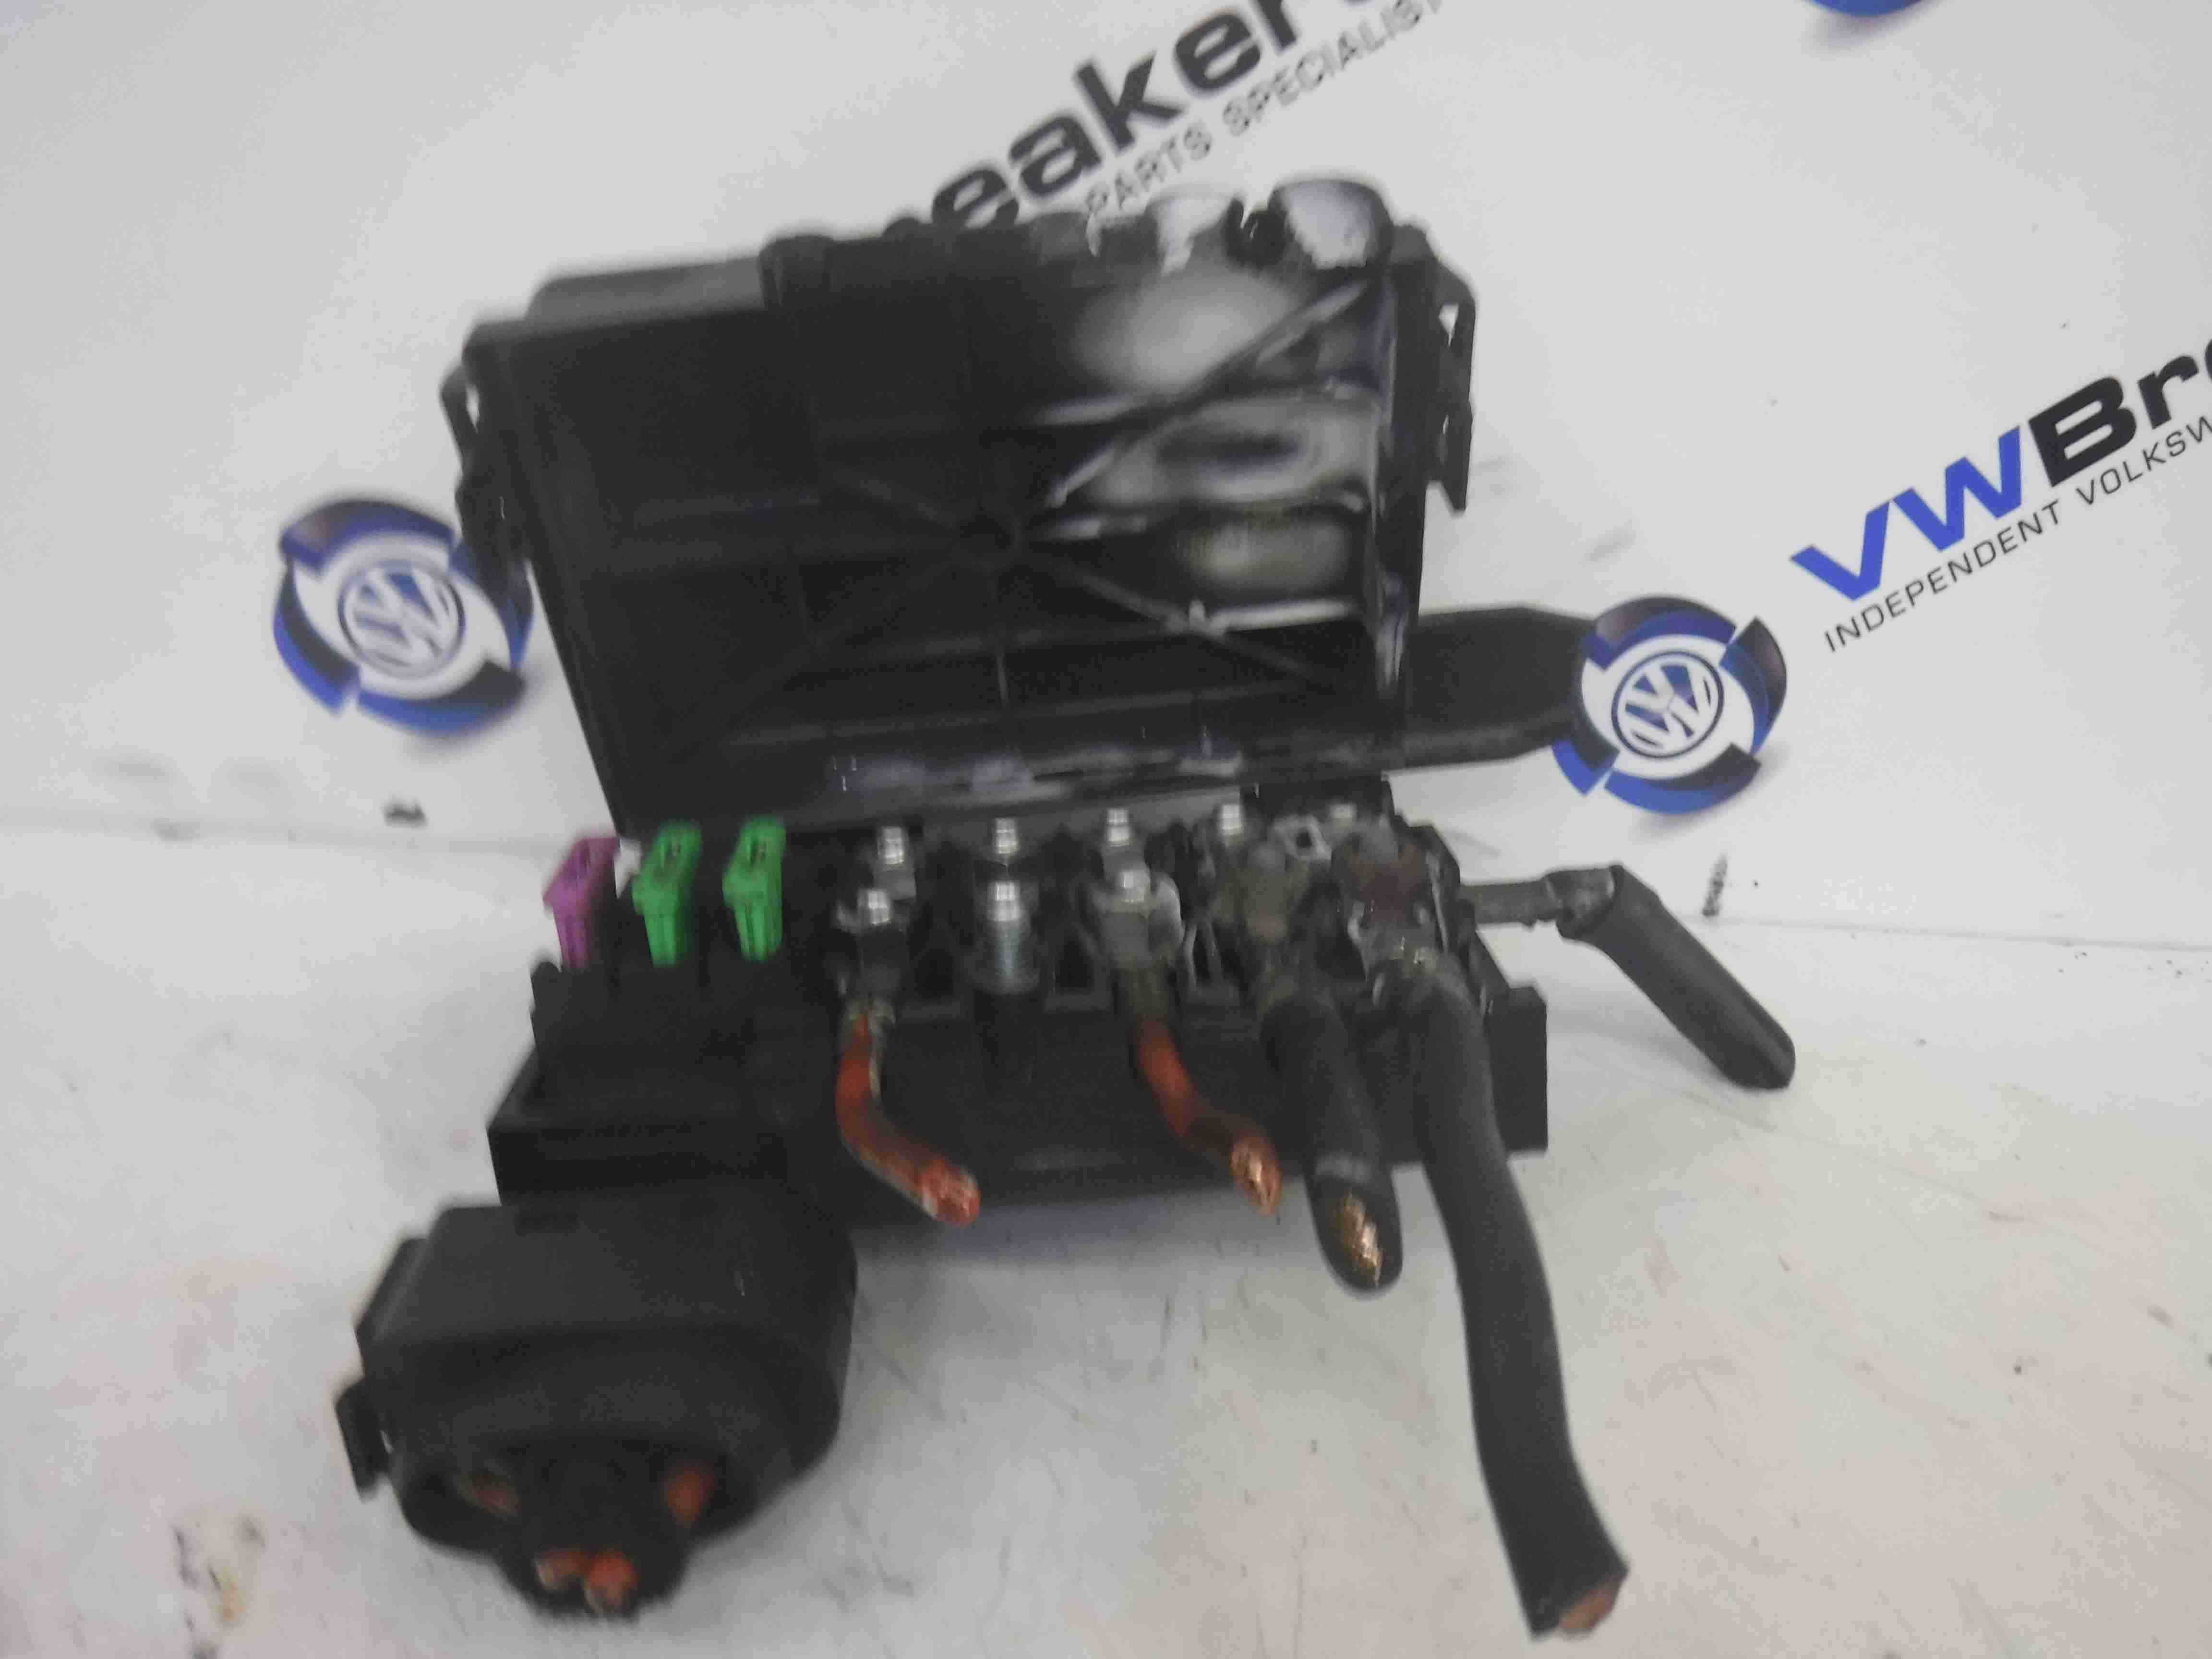 Volkswagen Sharan 2000 2009 Engine Bay Battery Fuse Box Terminal Vw Conpartment Store Used Parts Uk Breakers